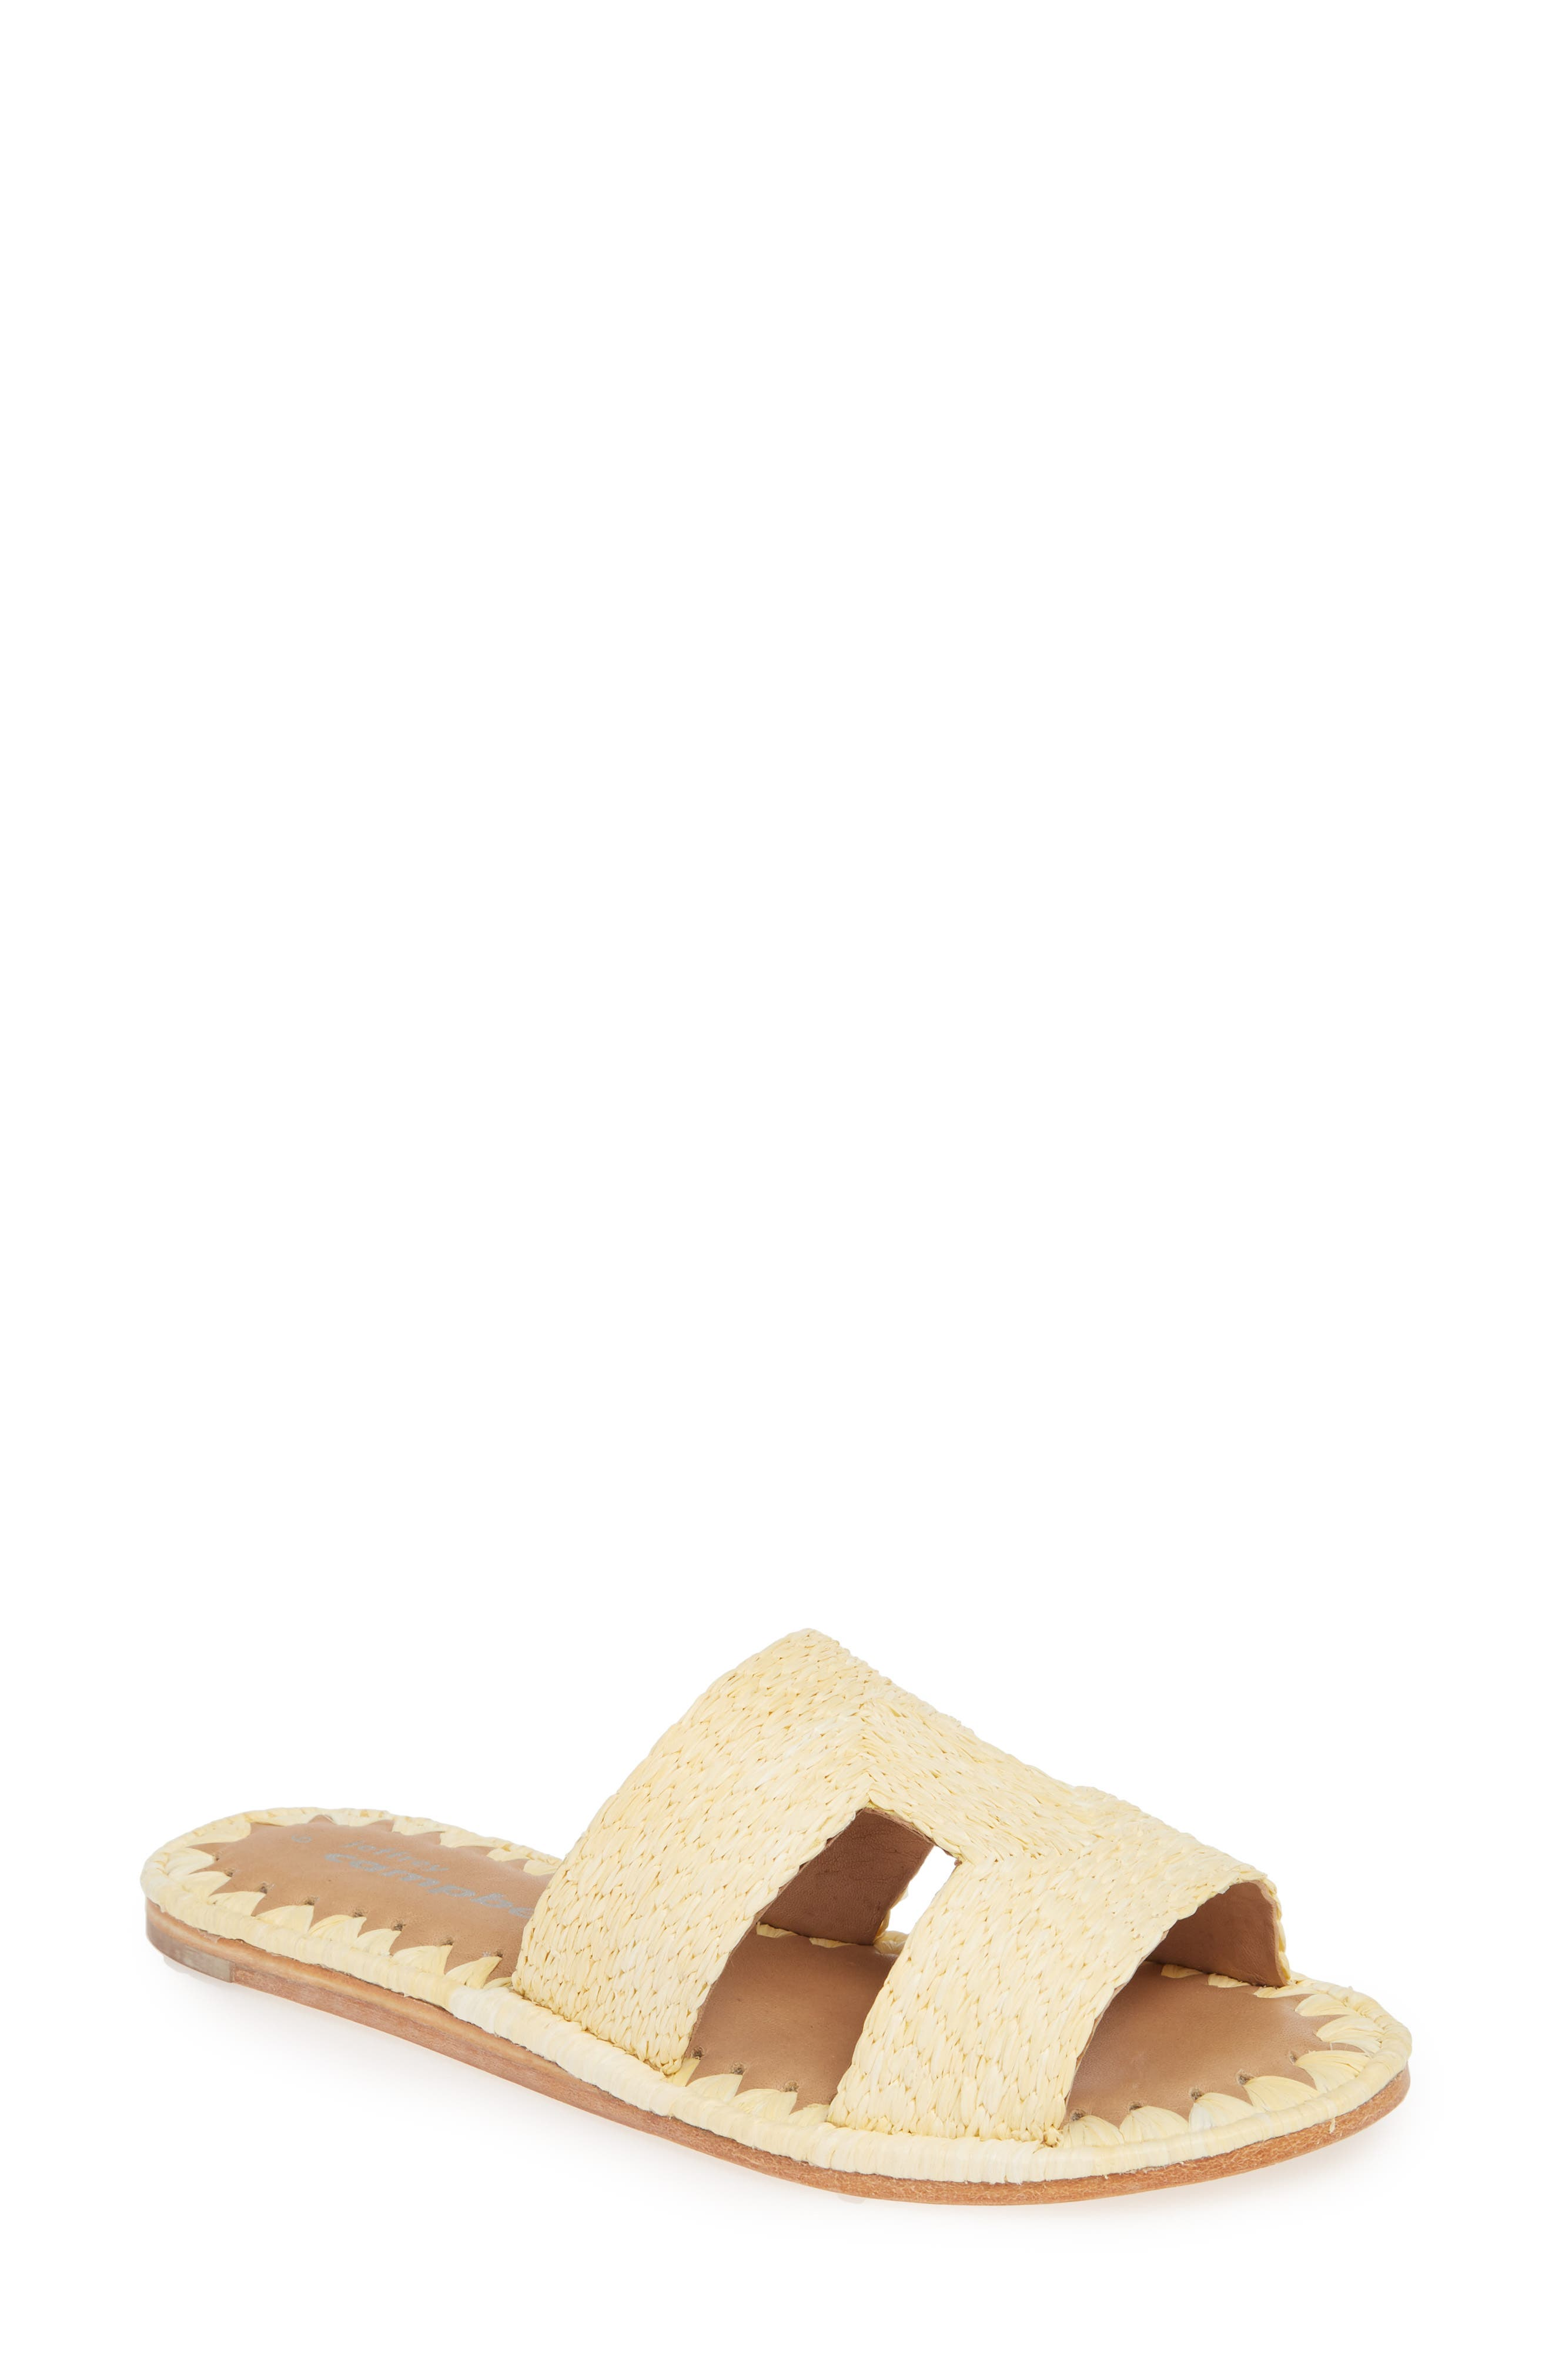 Ernon Raffia Slide Sandal, Main, color, NATURAL